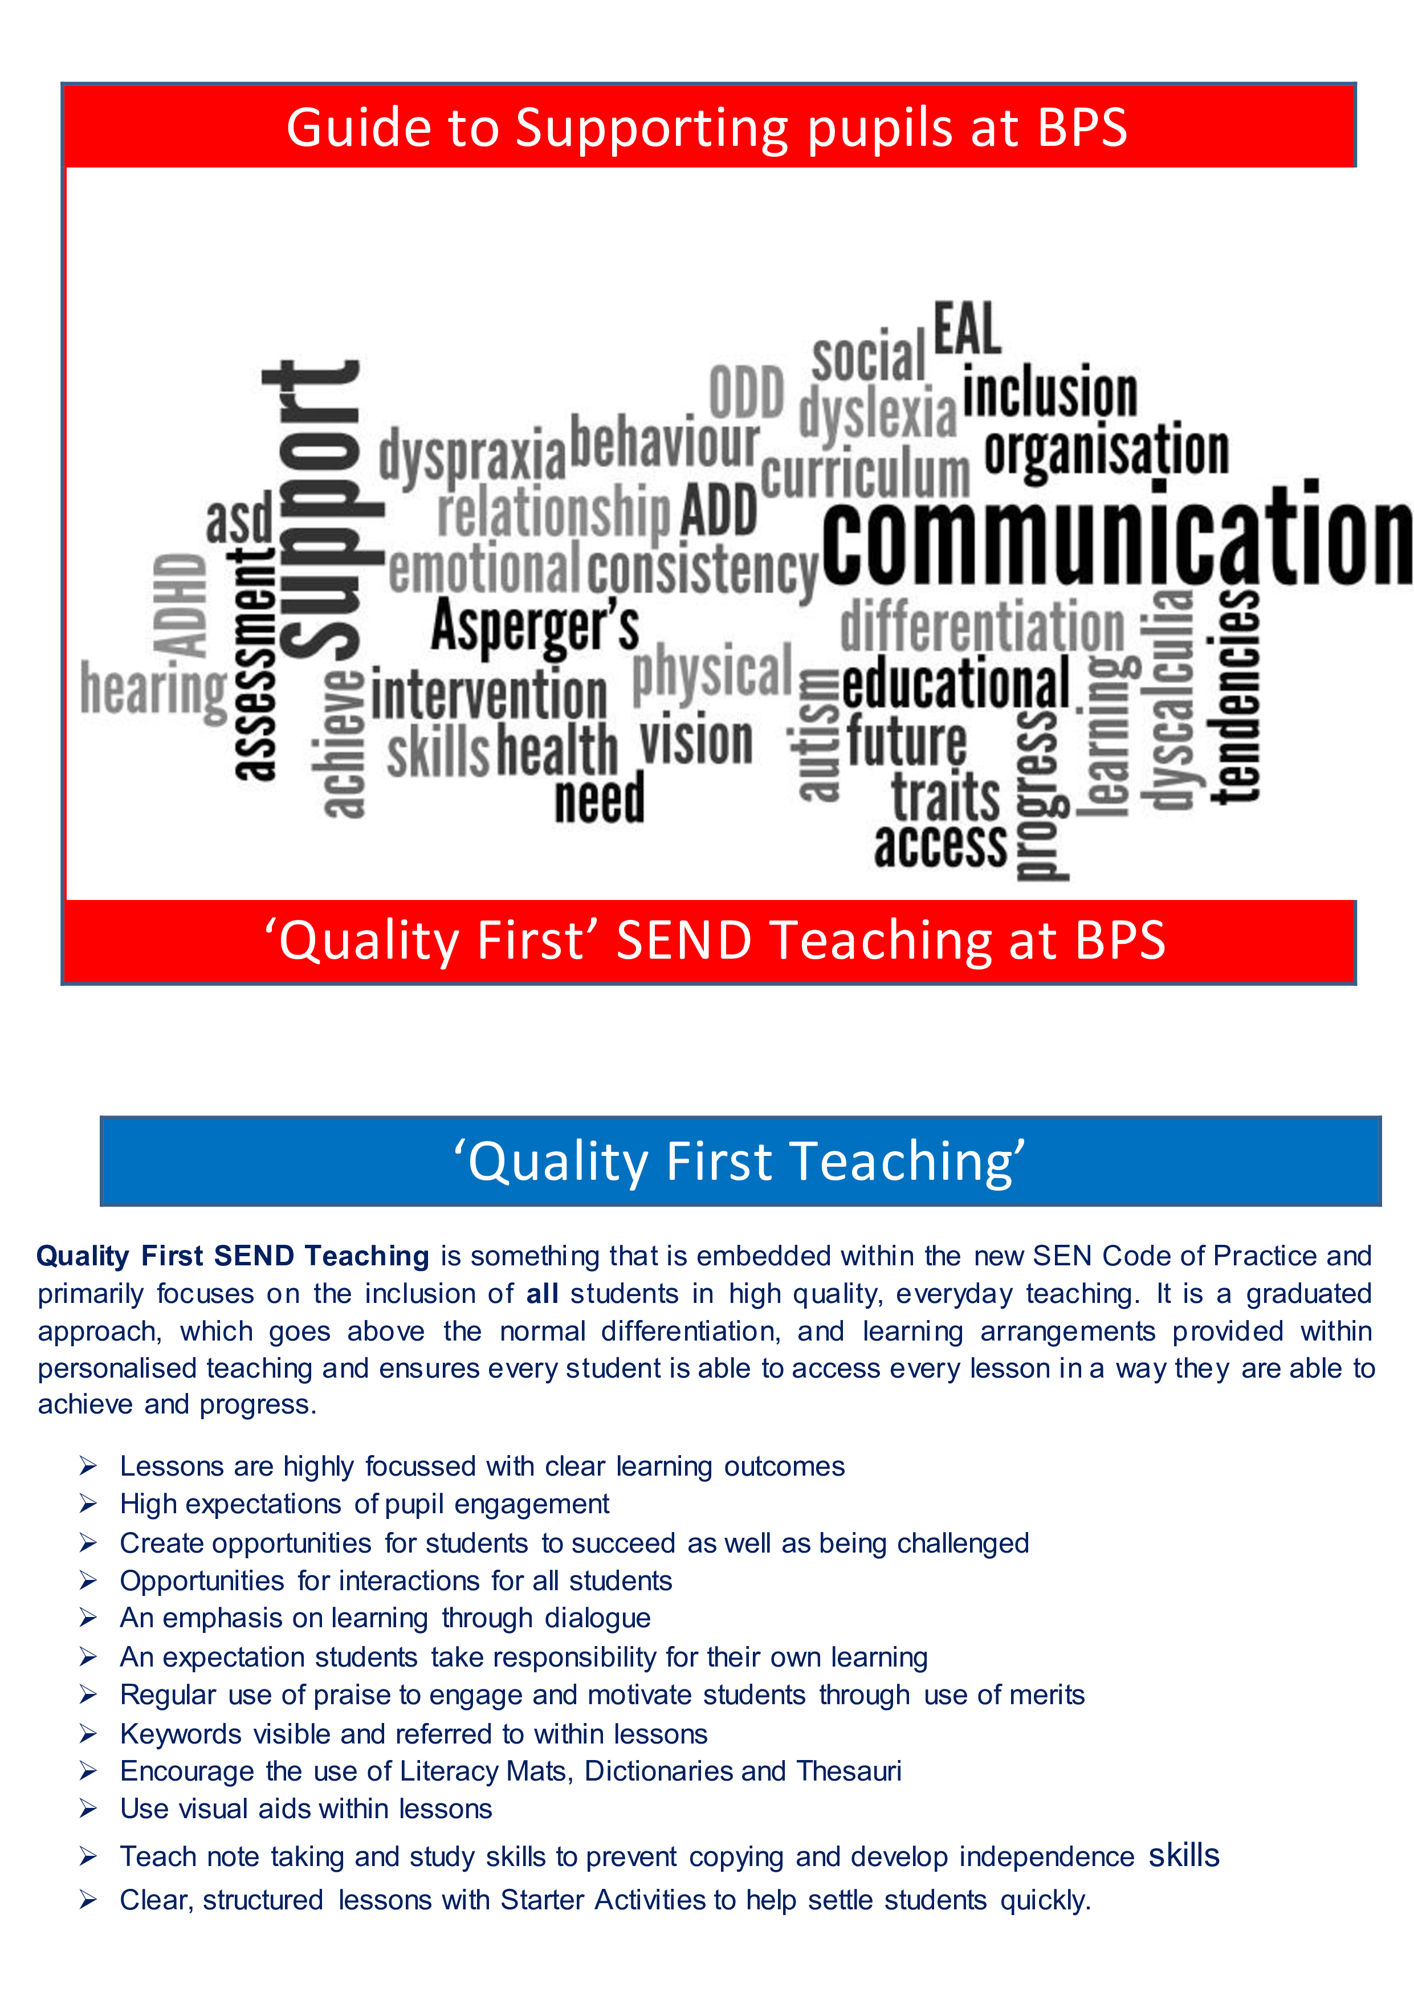 Guide to supporting pupils BPS 0000